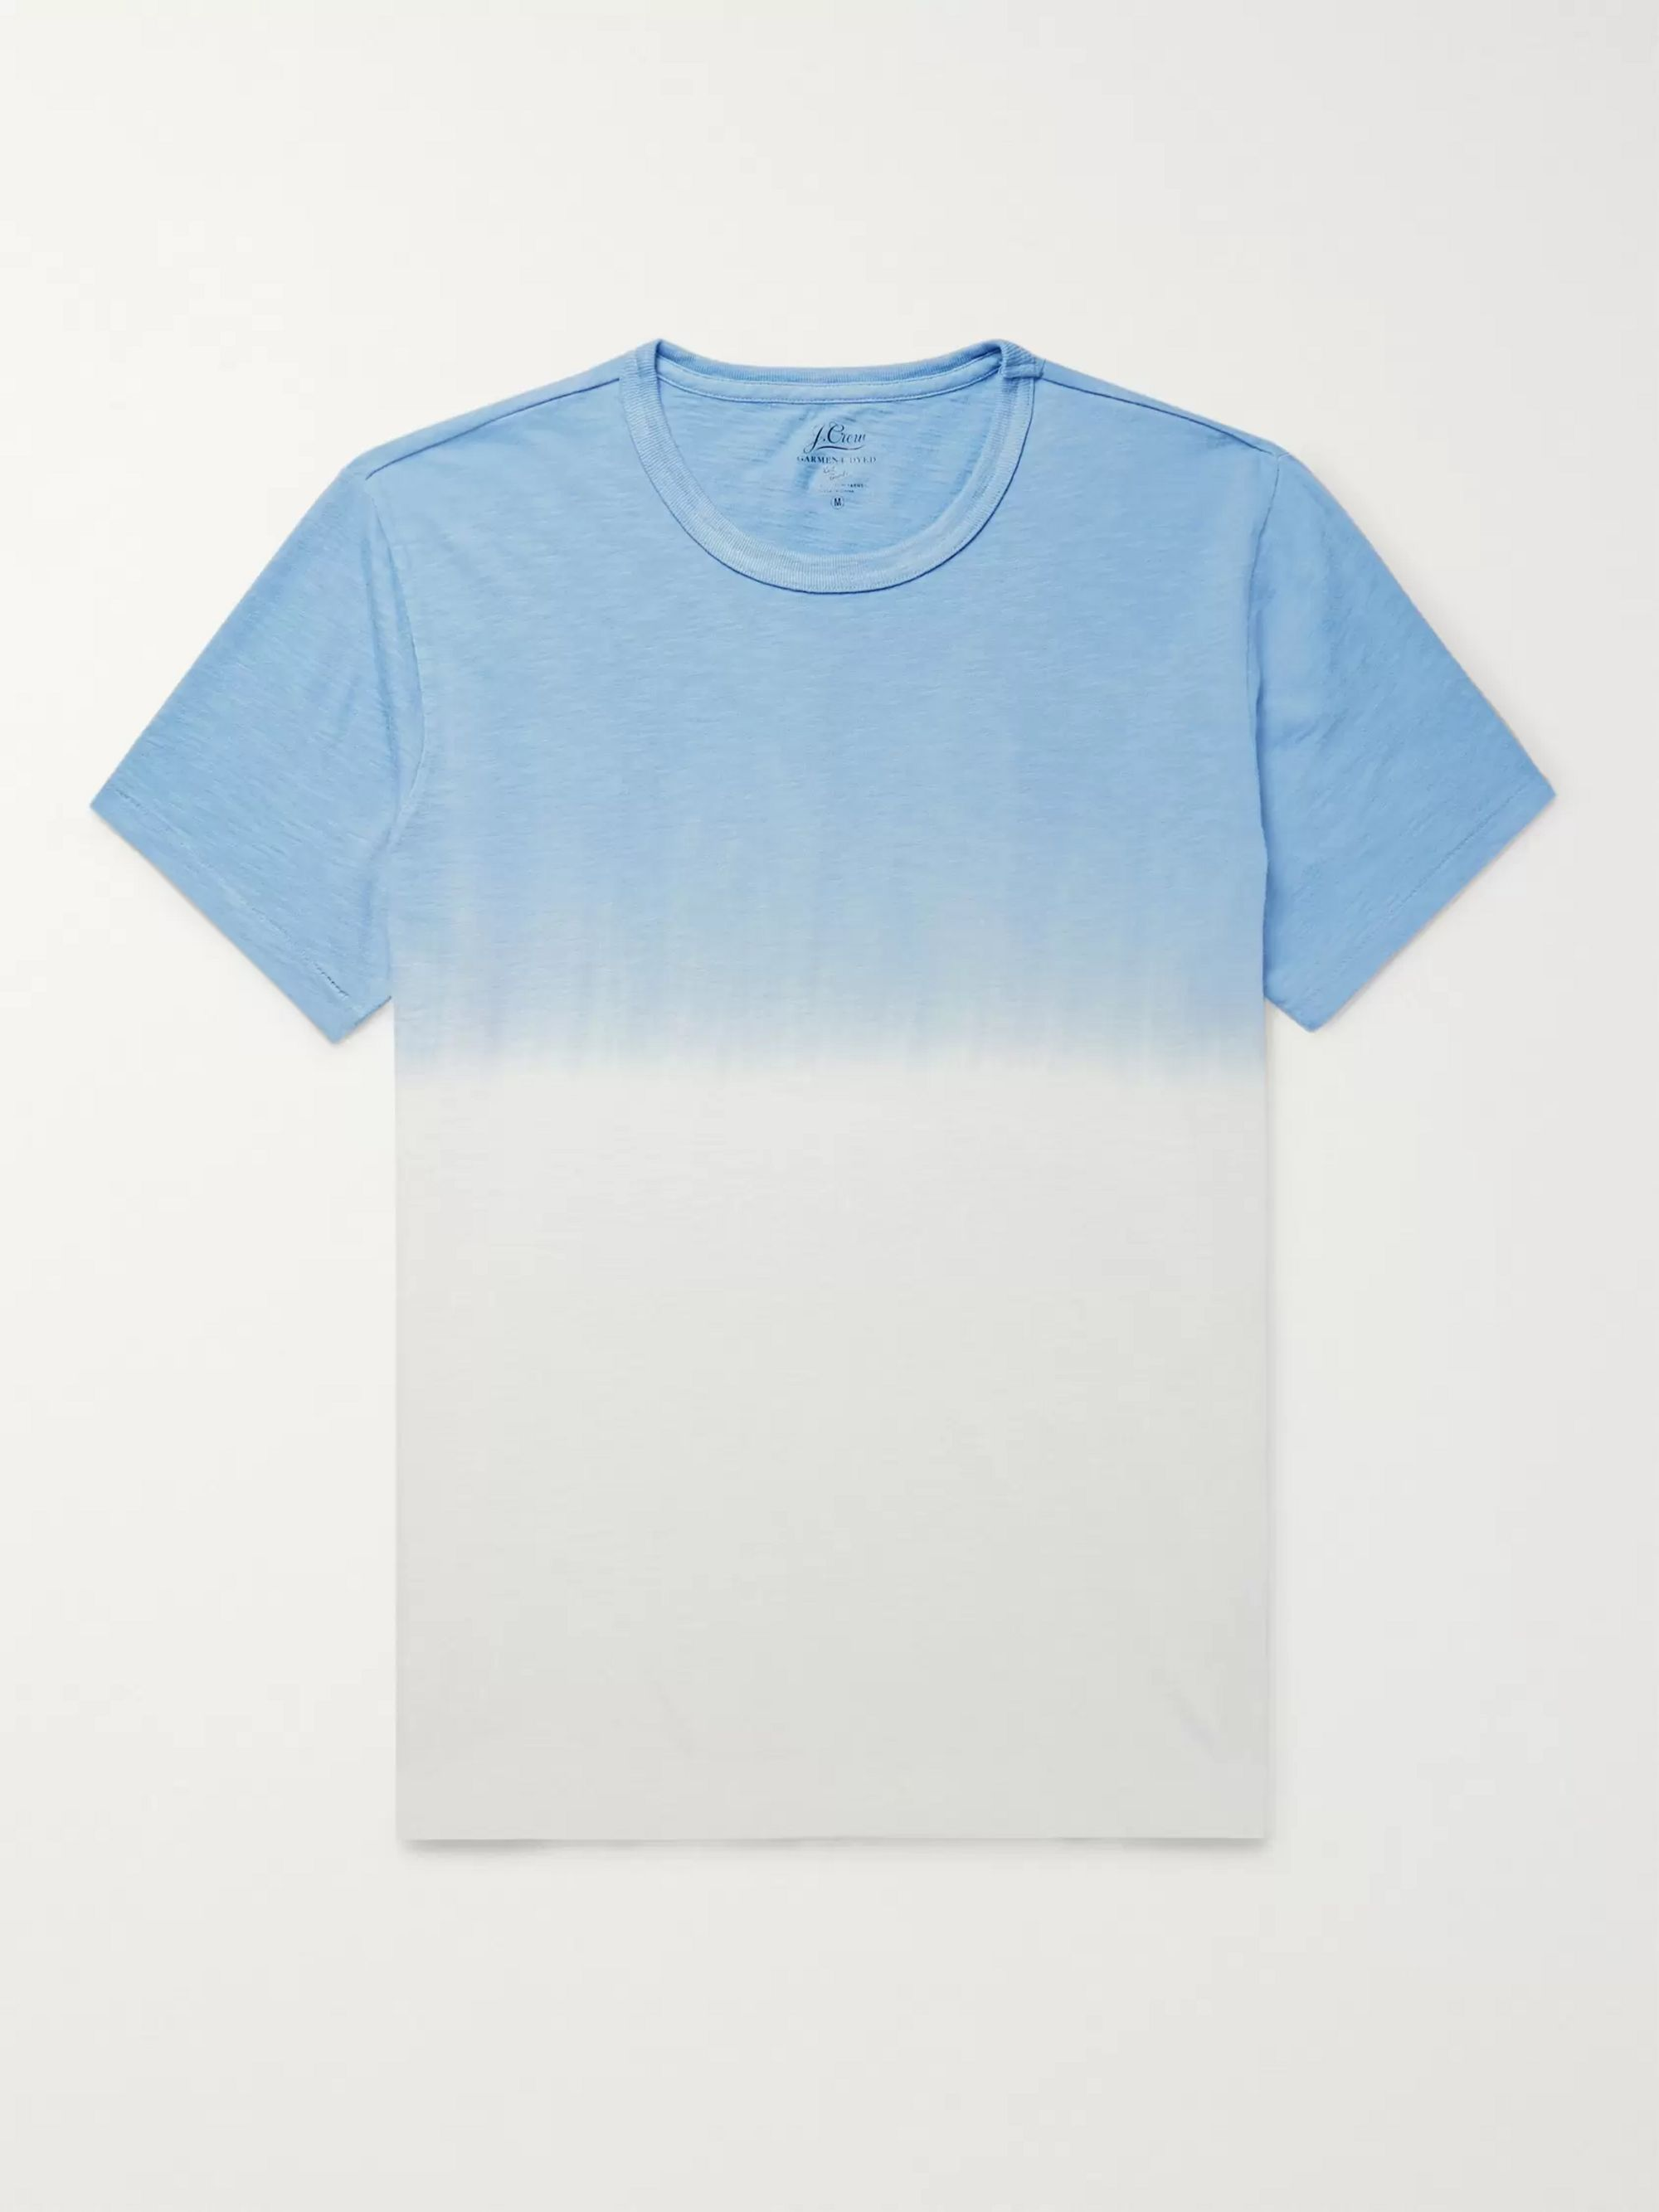 J.Crew Dip-Dyed Slub Cotton-Jersey T-Shirt